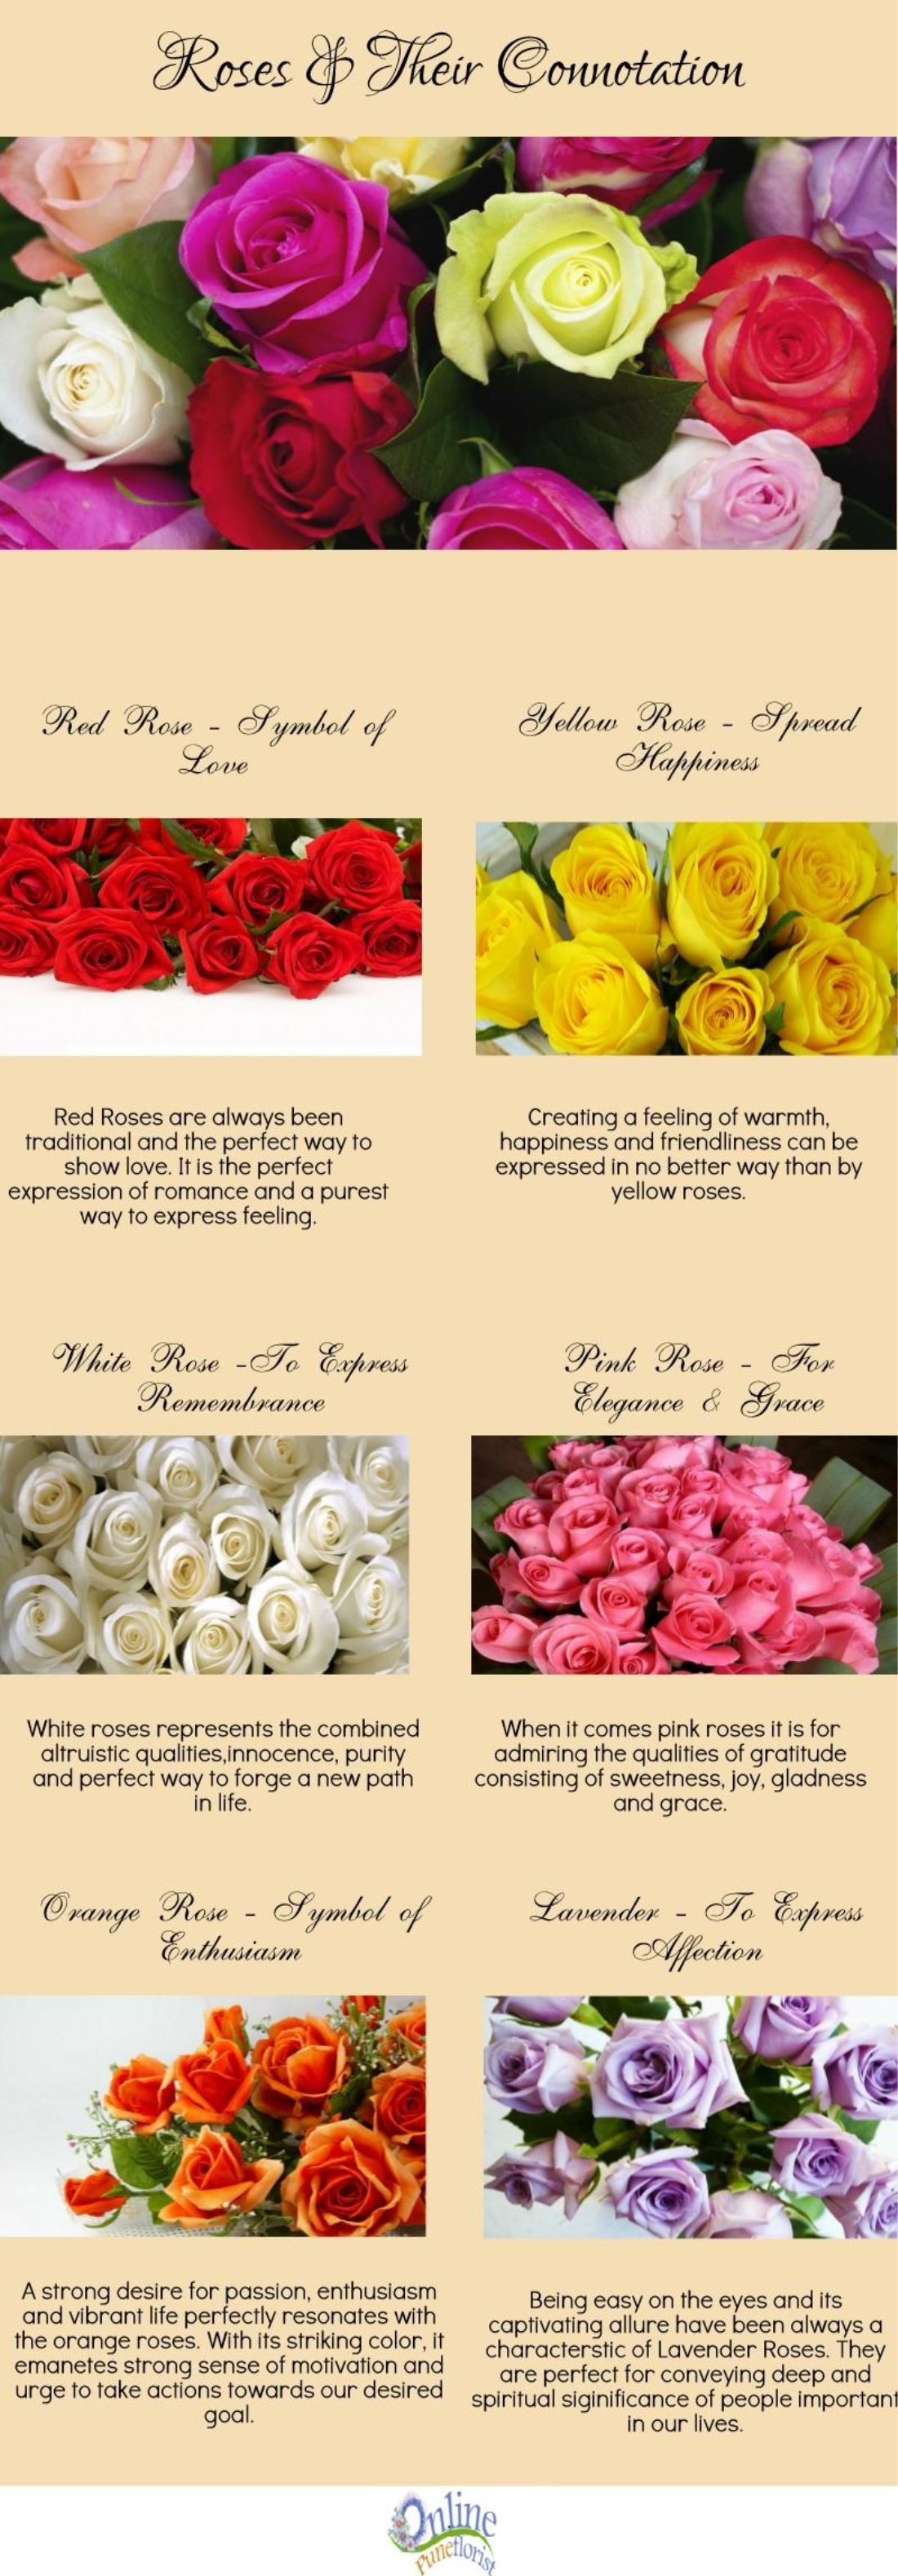 ONLINE%20PUNE%20FLORIST - Roses & Their Connotations